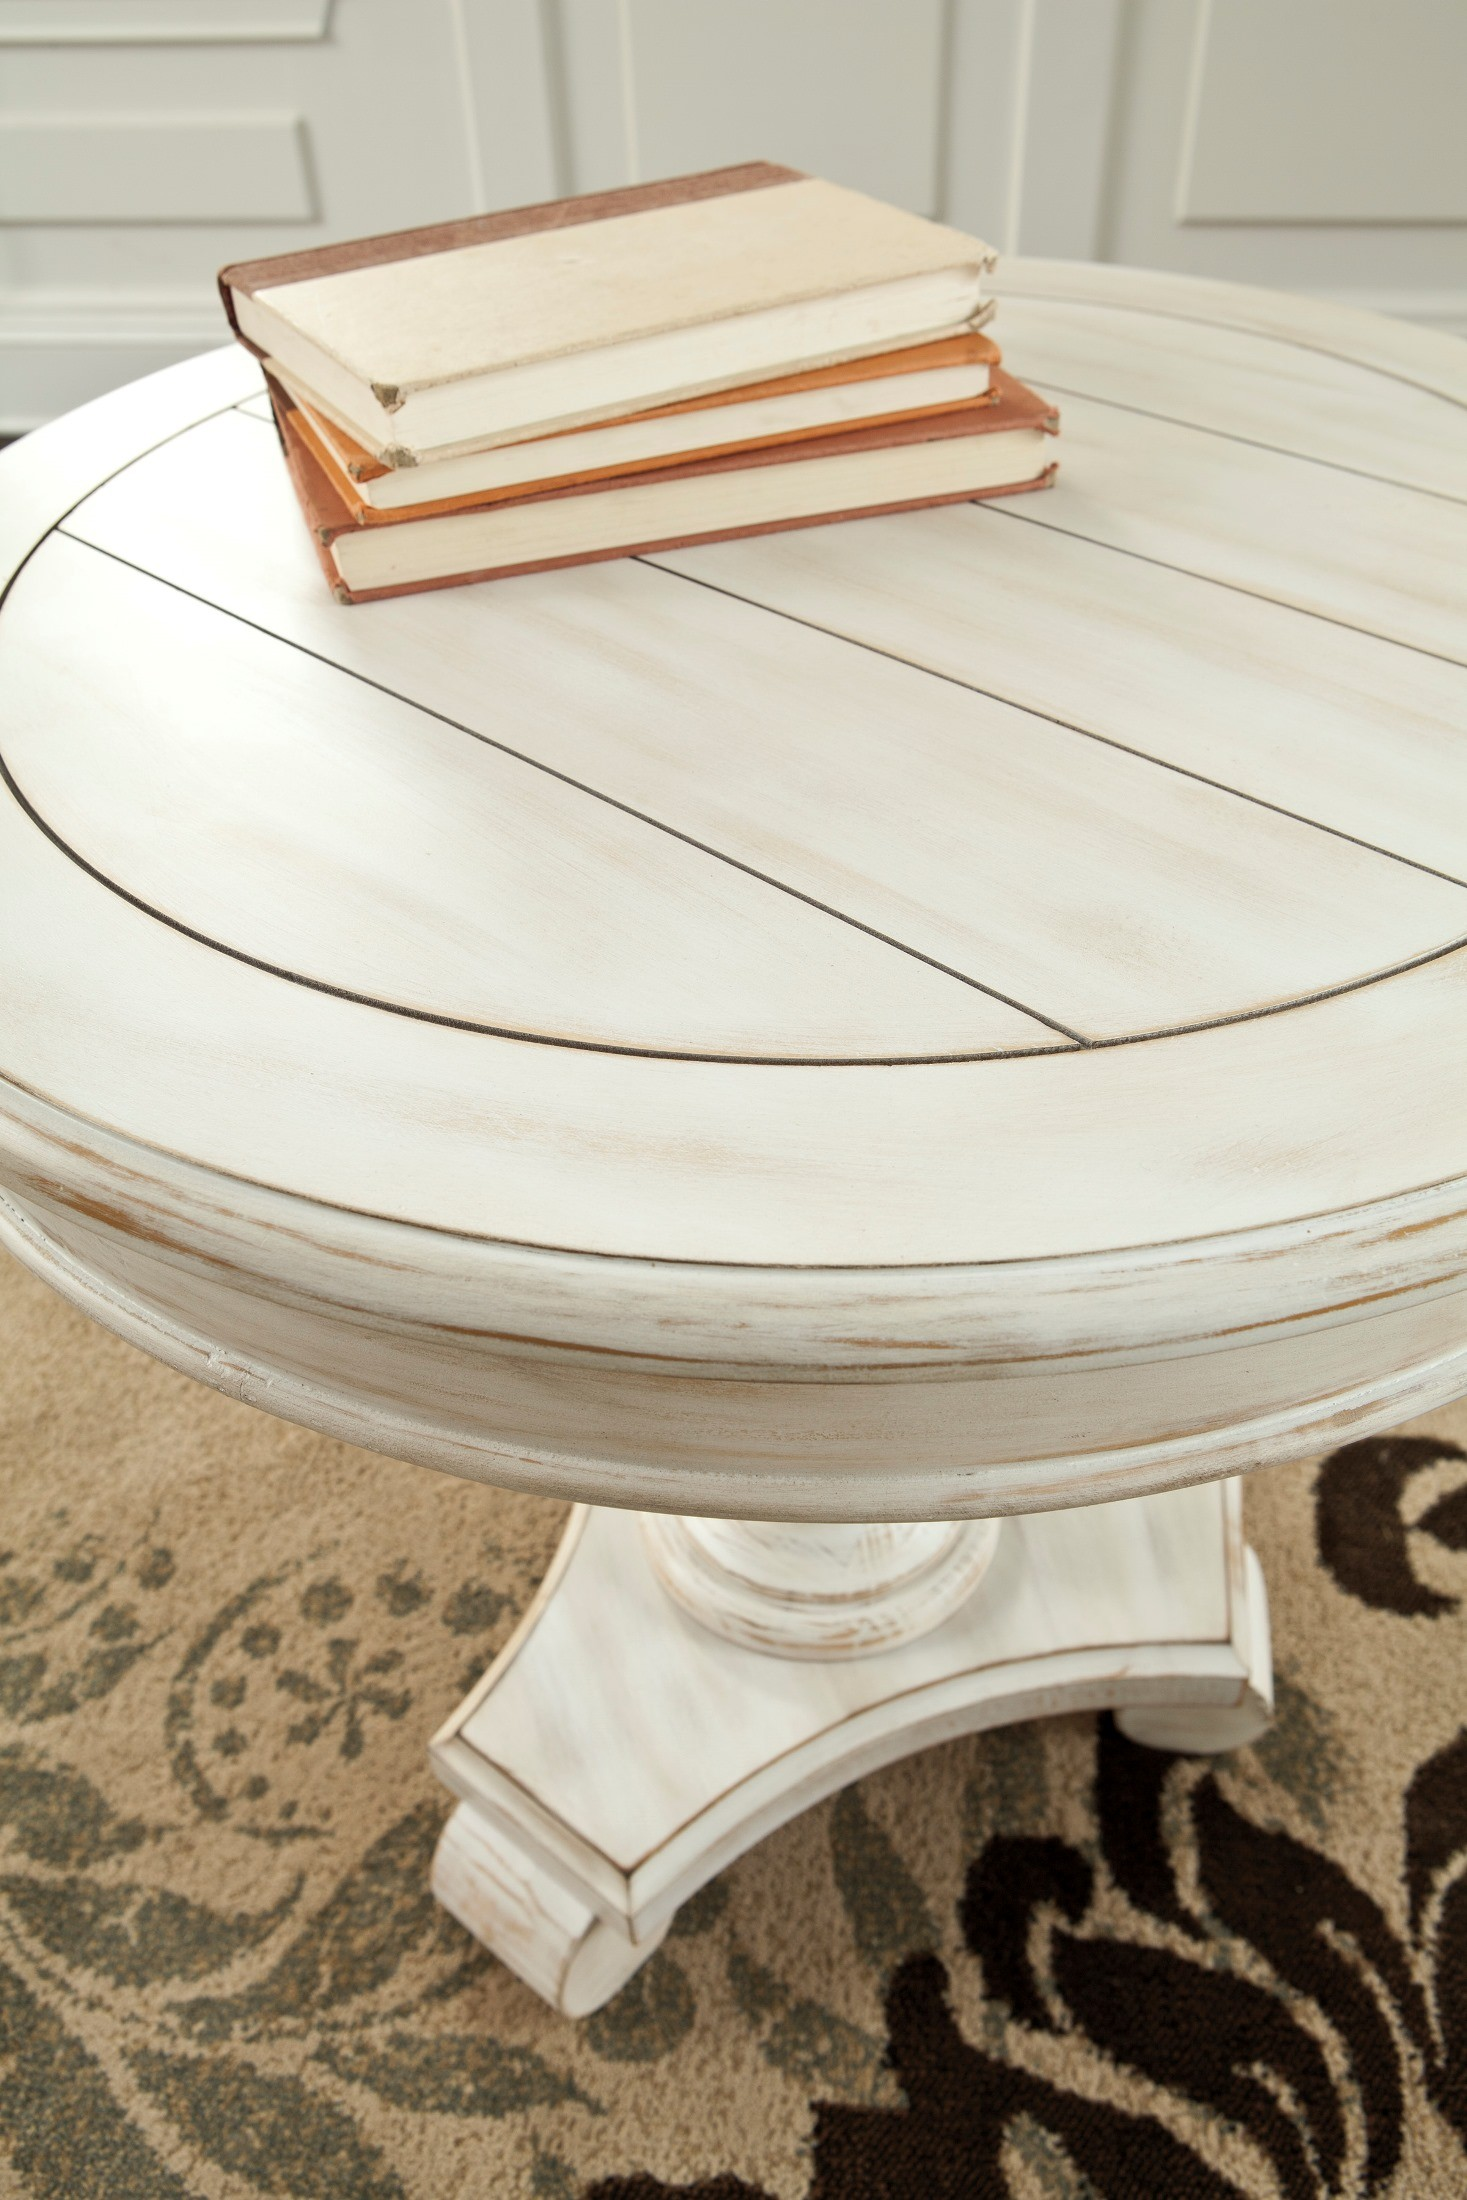 mirimyn white painted round accent table from ashley detail outdoor glass top side zinc quilted runner ideas danish modern foot patio umbrella affordable nightstands family room